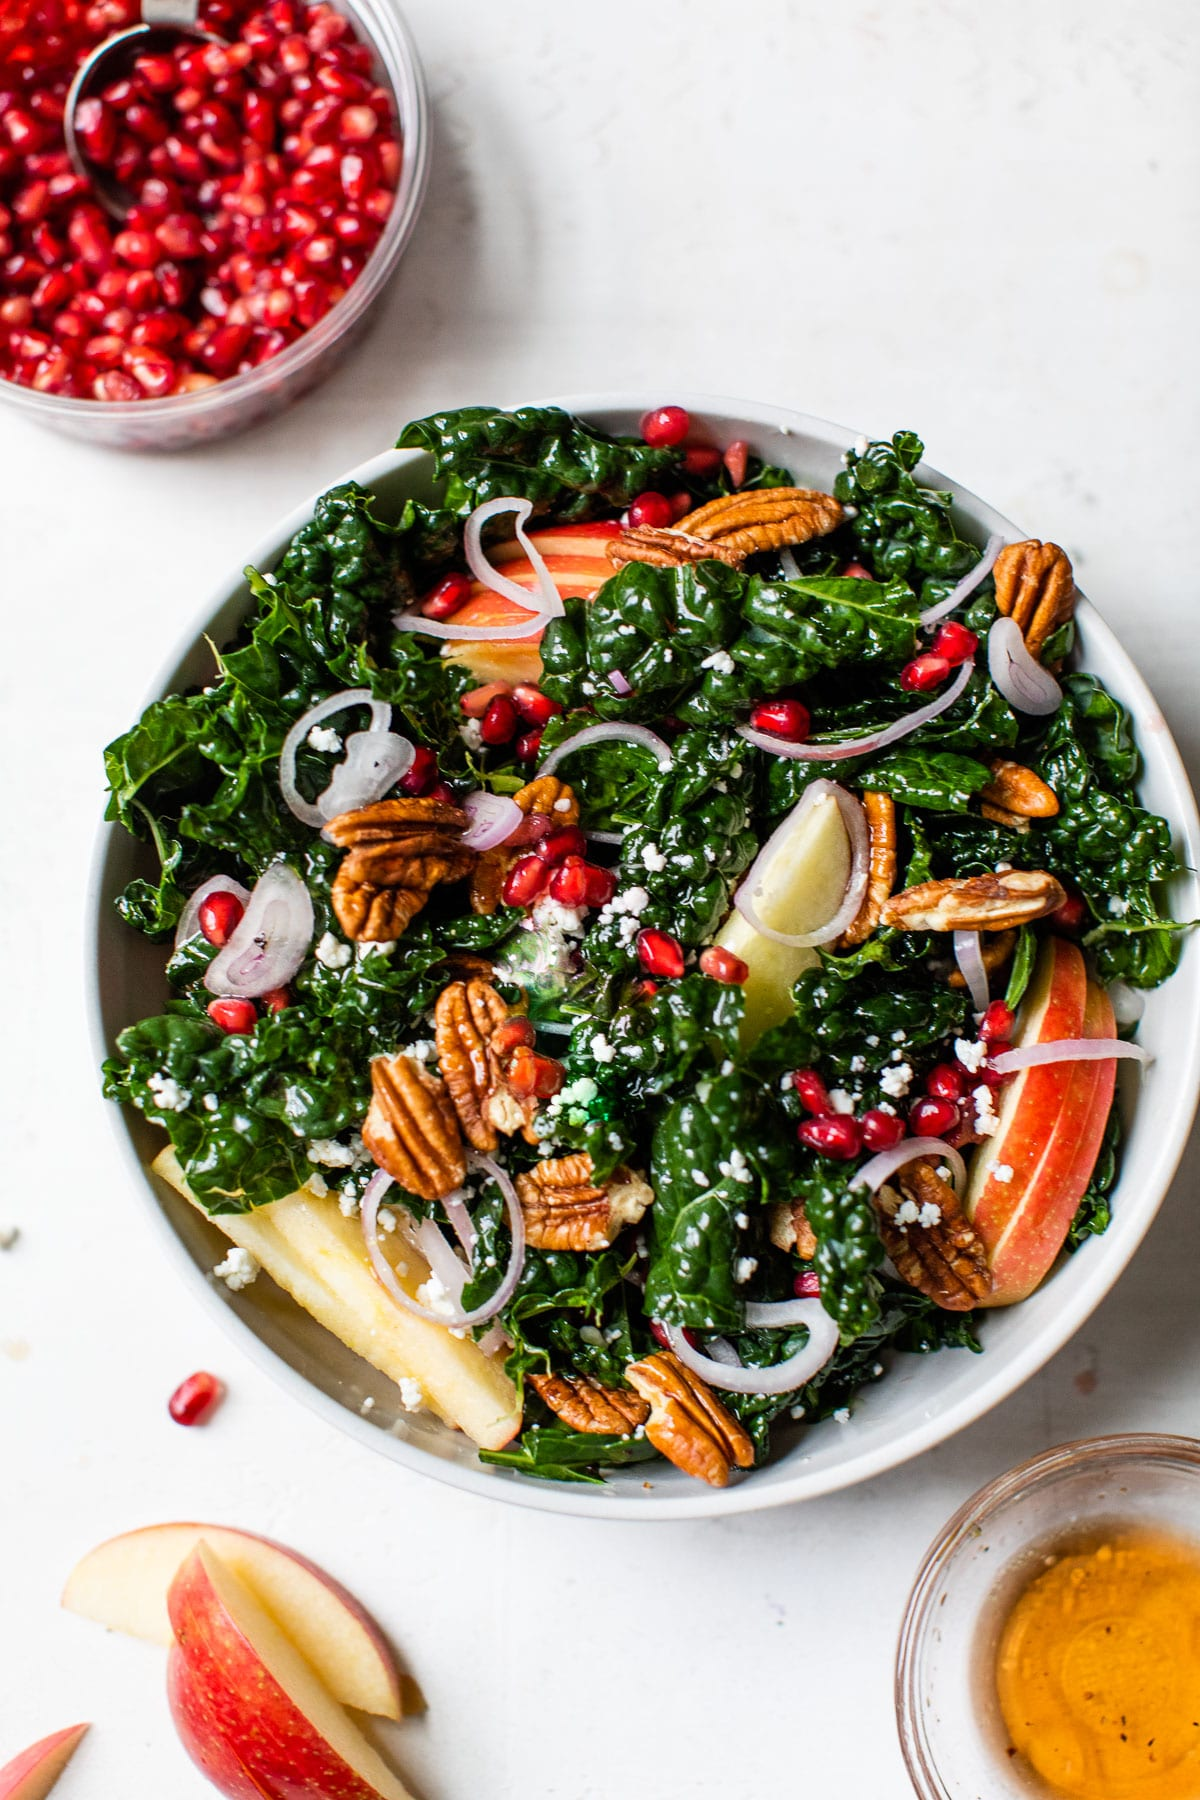 kale salad with apple, shallot and pomegranate seeds